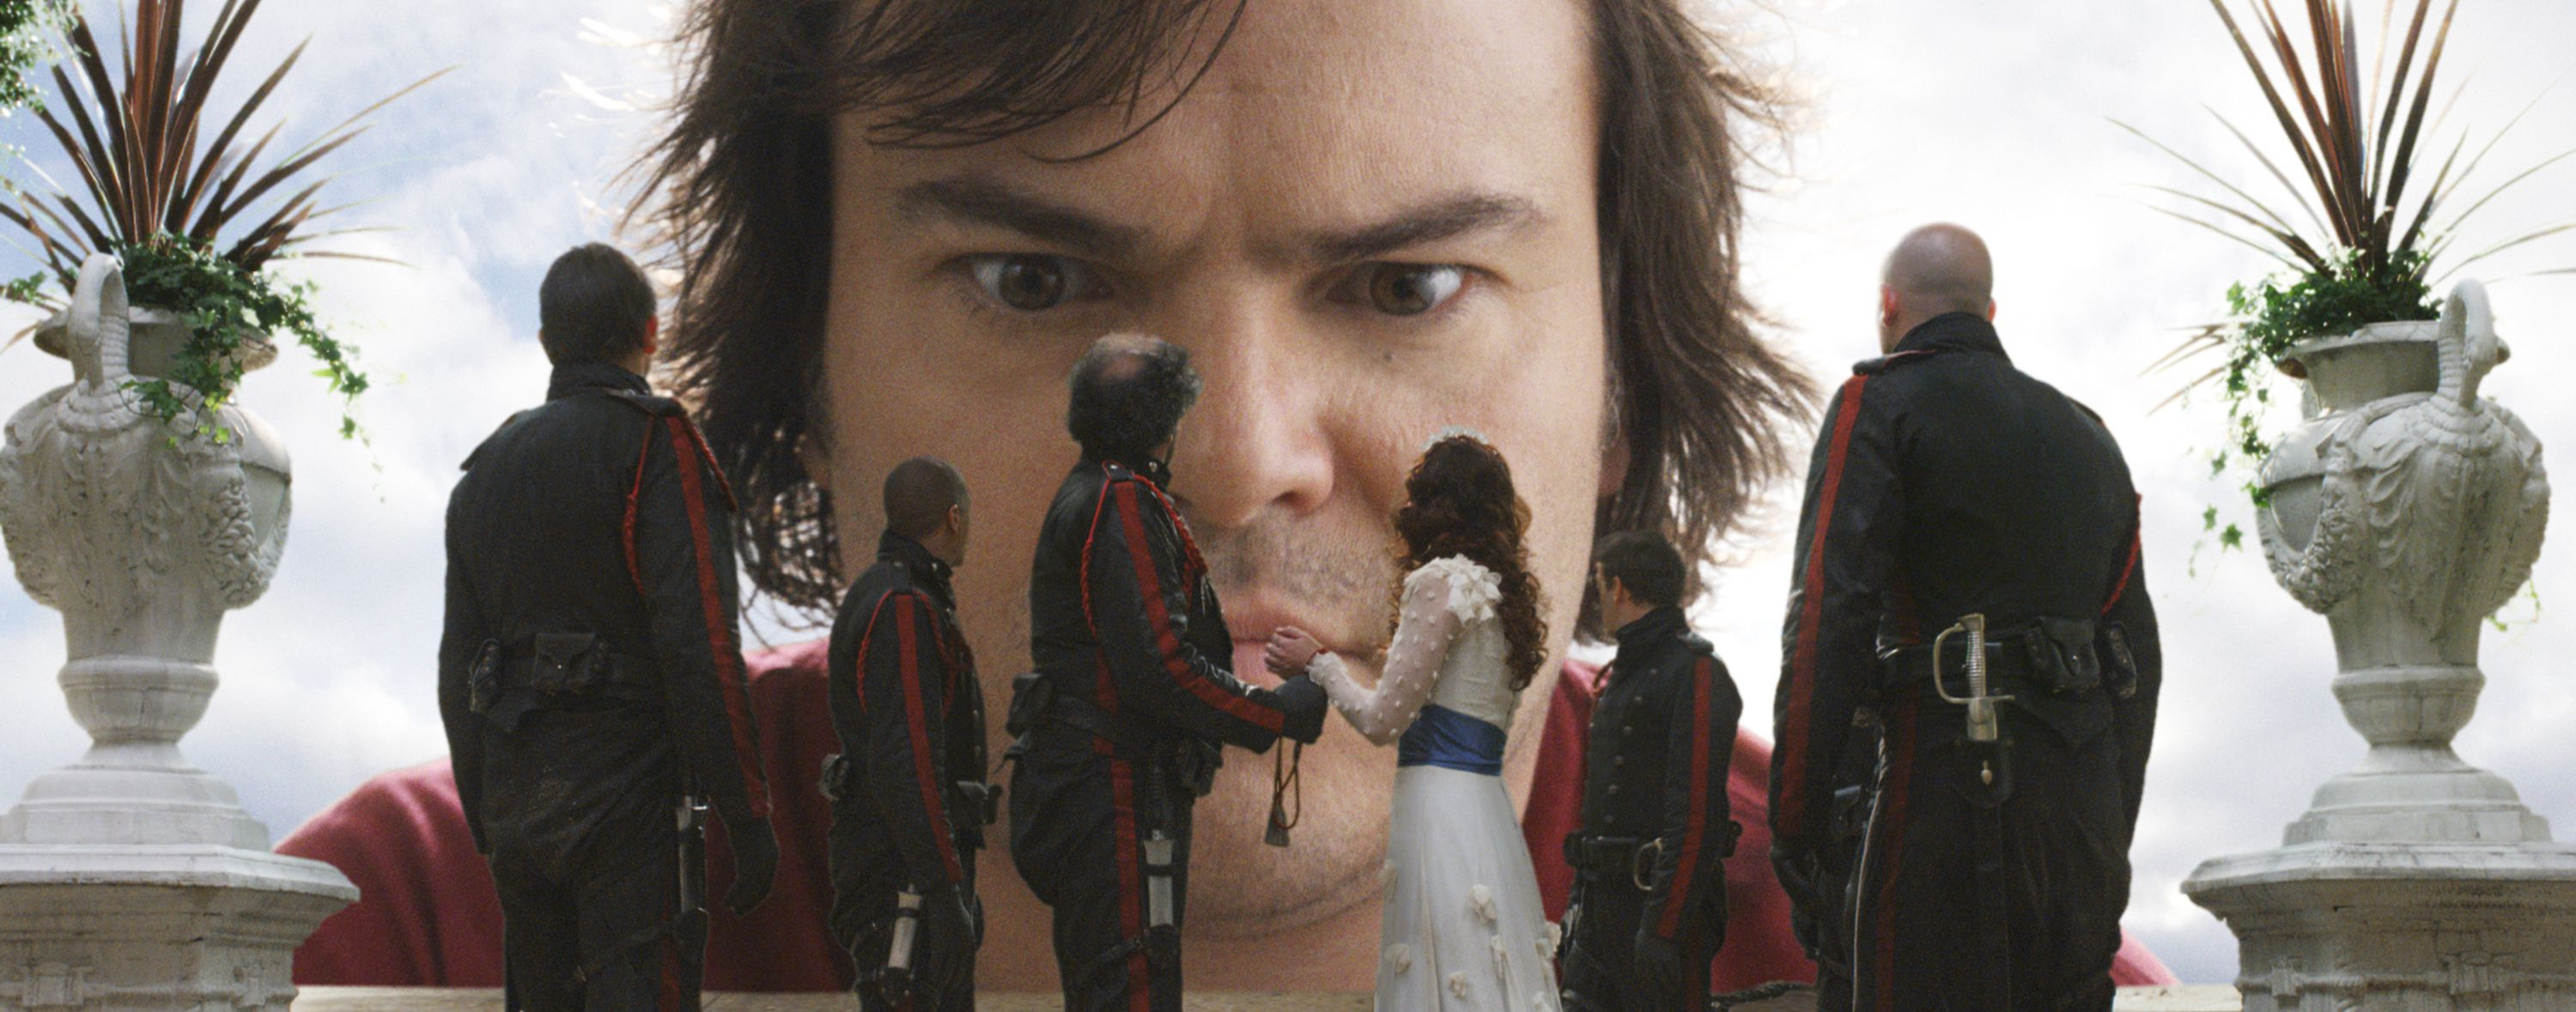 An image from Gulliver's Travels